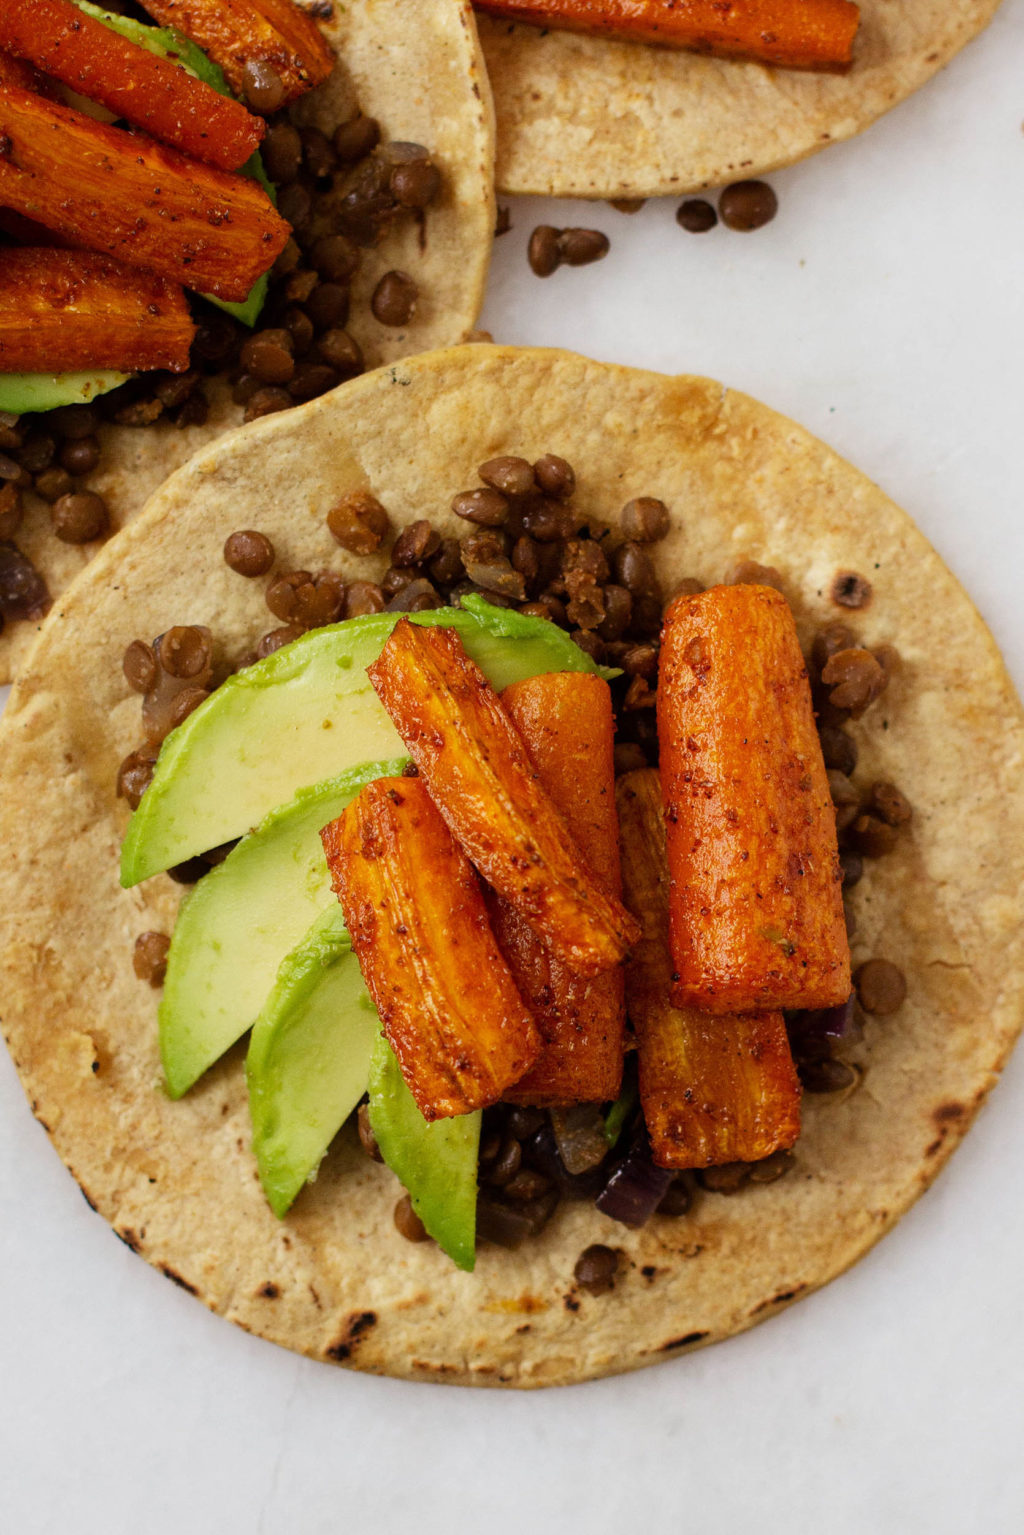 A close up, overhead shot of plant-based tacos with roasted carrots, avocado slices, and spiced lentils.